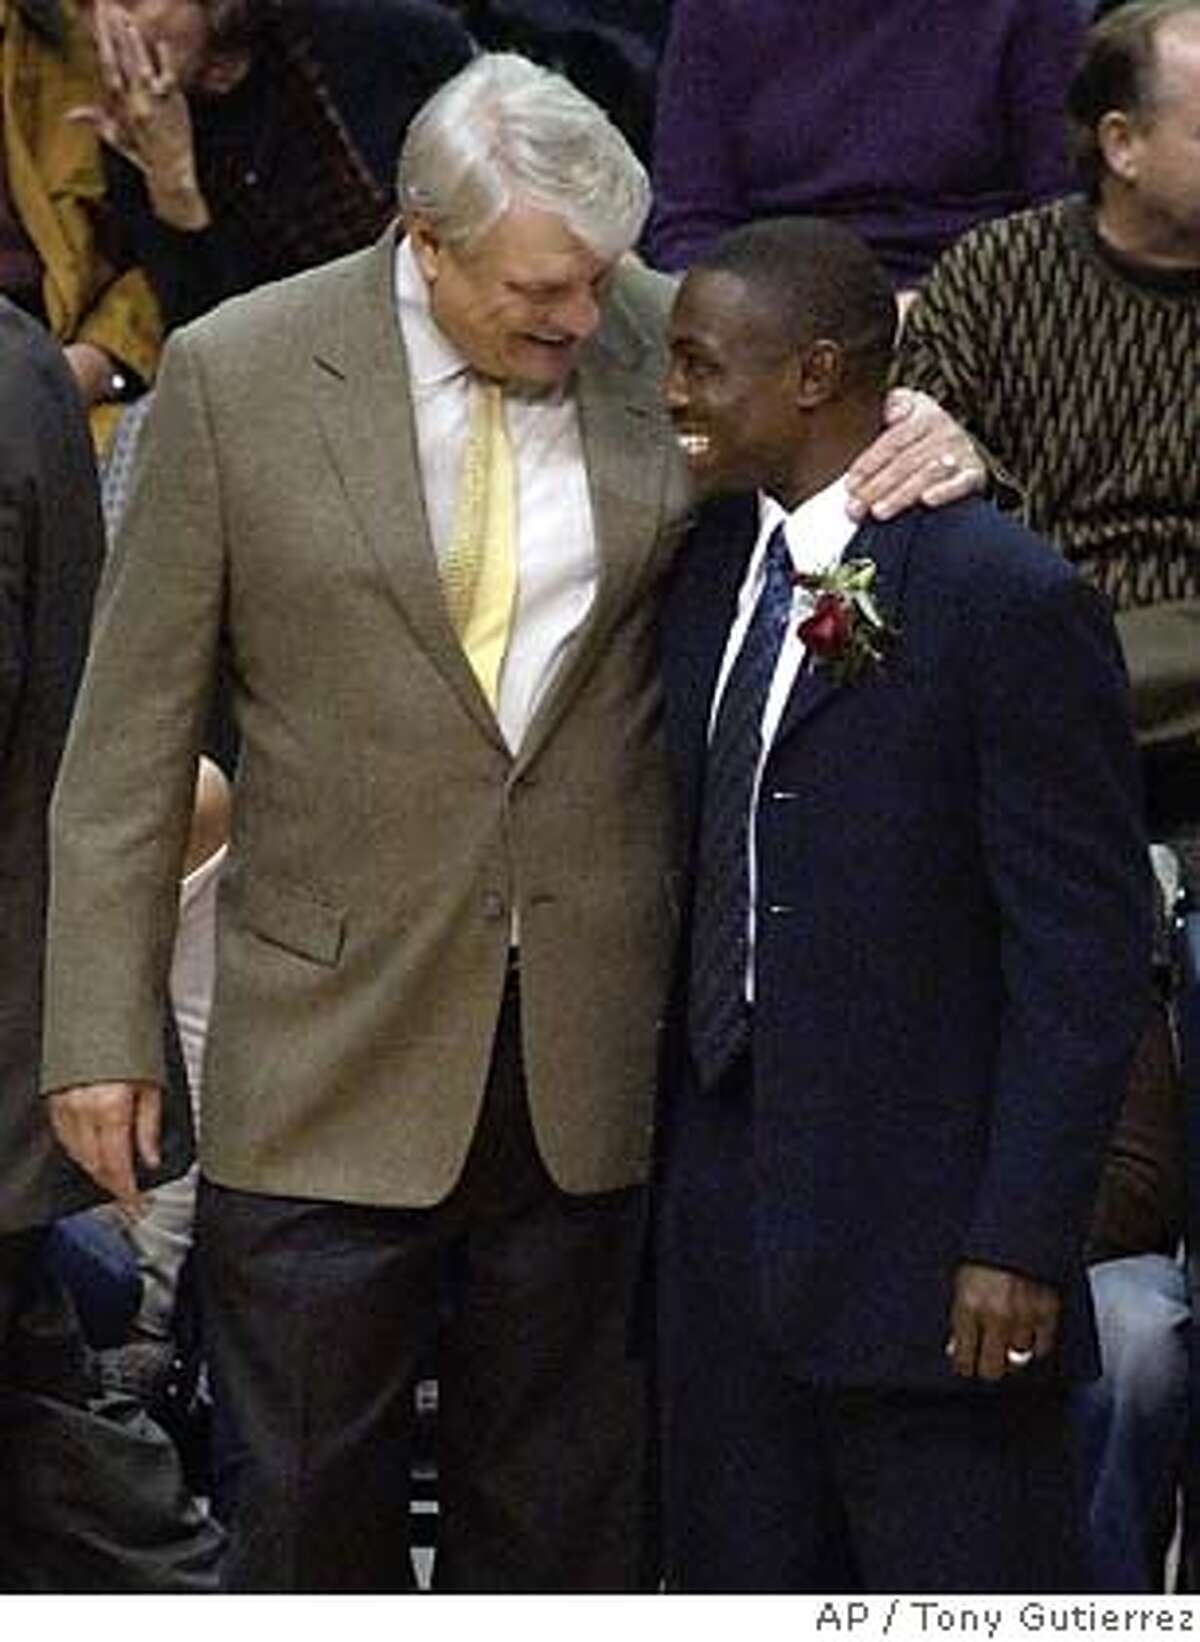 Dallas Mavericks head coach Don Nelson, left, gives assistant coach Avery Johnson, right, a smile and a hug just prior to the start of the game against the San Antonio Spurs, Tuesday, Nov. 30, 2004, in Dallas. Johnson was given the head coach responsiblities for the night as Nelson sat on the bench. (AP Photo/Tony Gutierrez) Ran on: 12-01-2004 Don Nelson offers advice to assistant coach Avery Johnson, who got his first training run as Mavericks head coach in a loss to the Spurs on Tuesday in San Antonio.